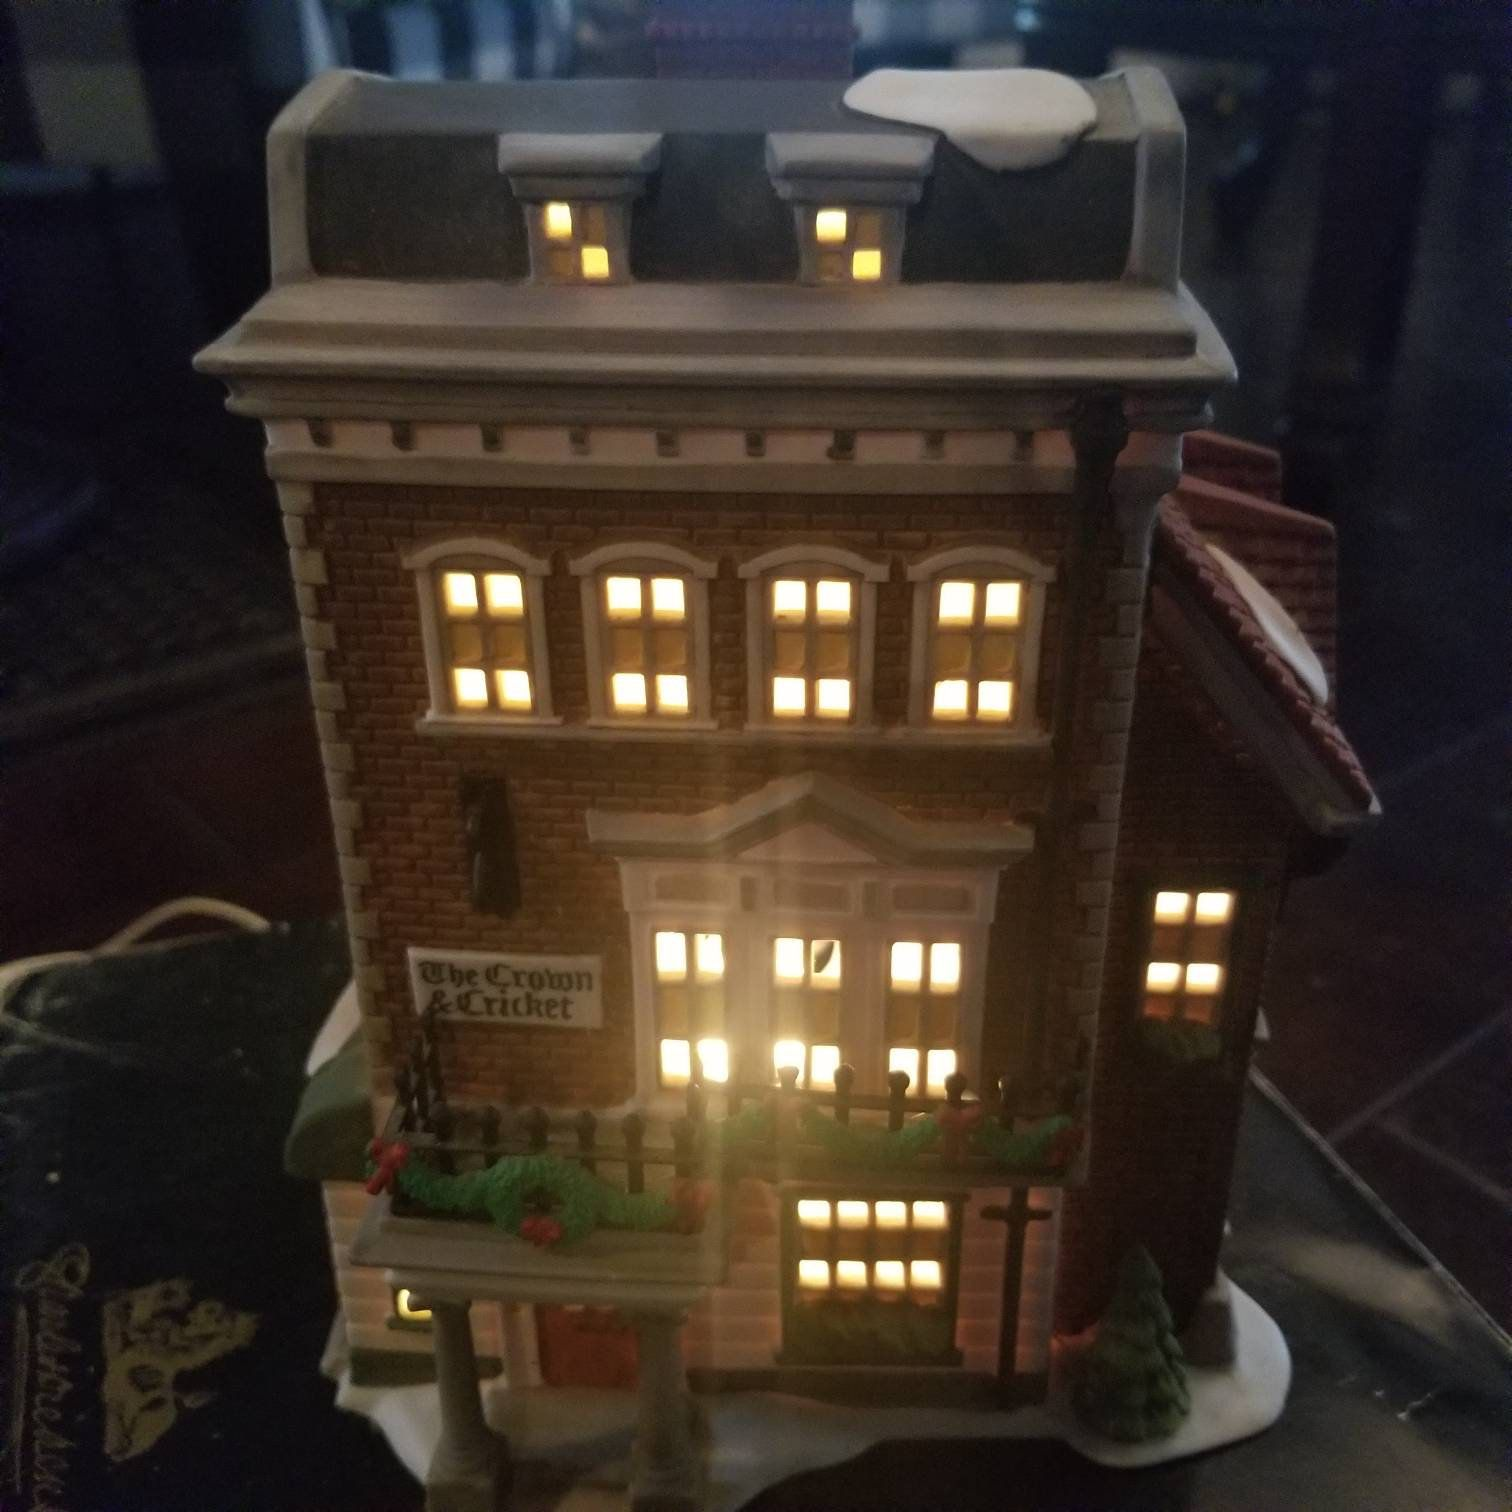 Crown And Cricket Inn Dept 56 Retired Box 57509 Department Dickens Village Mint Dickens Village Dept 56 Dickens